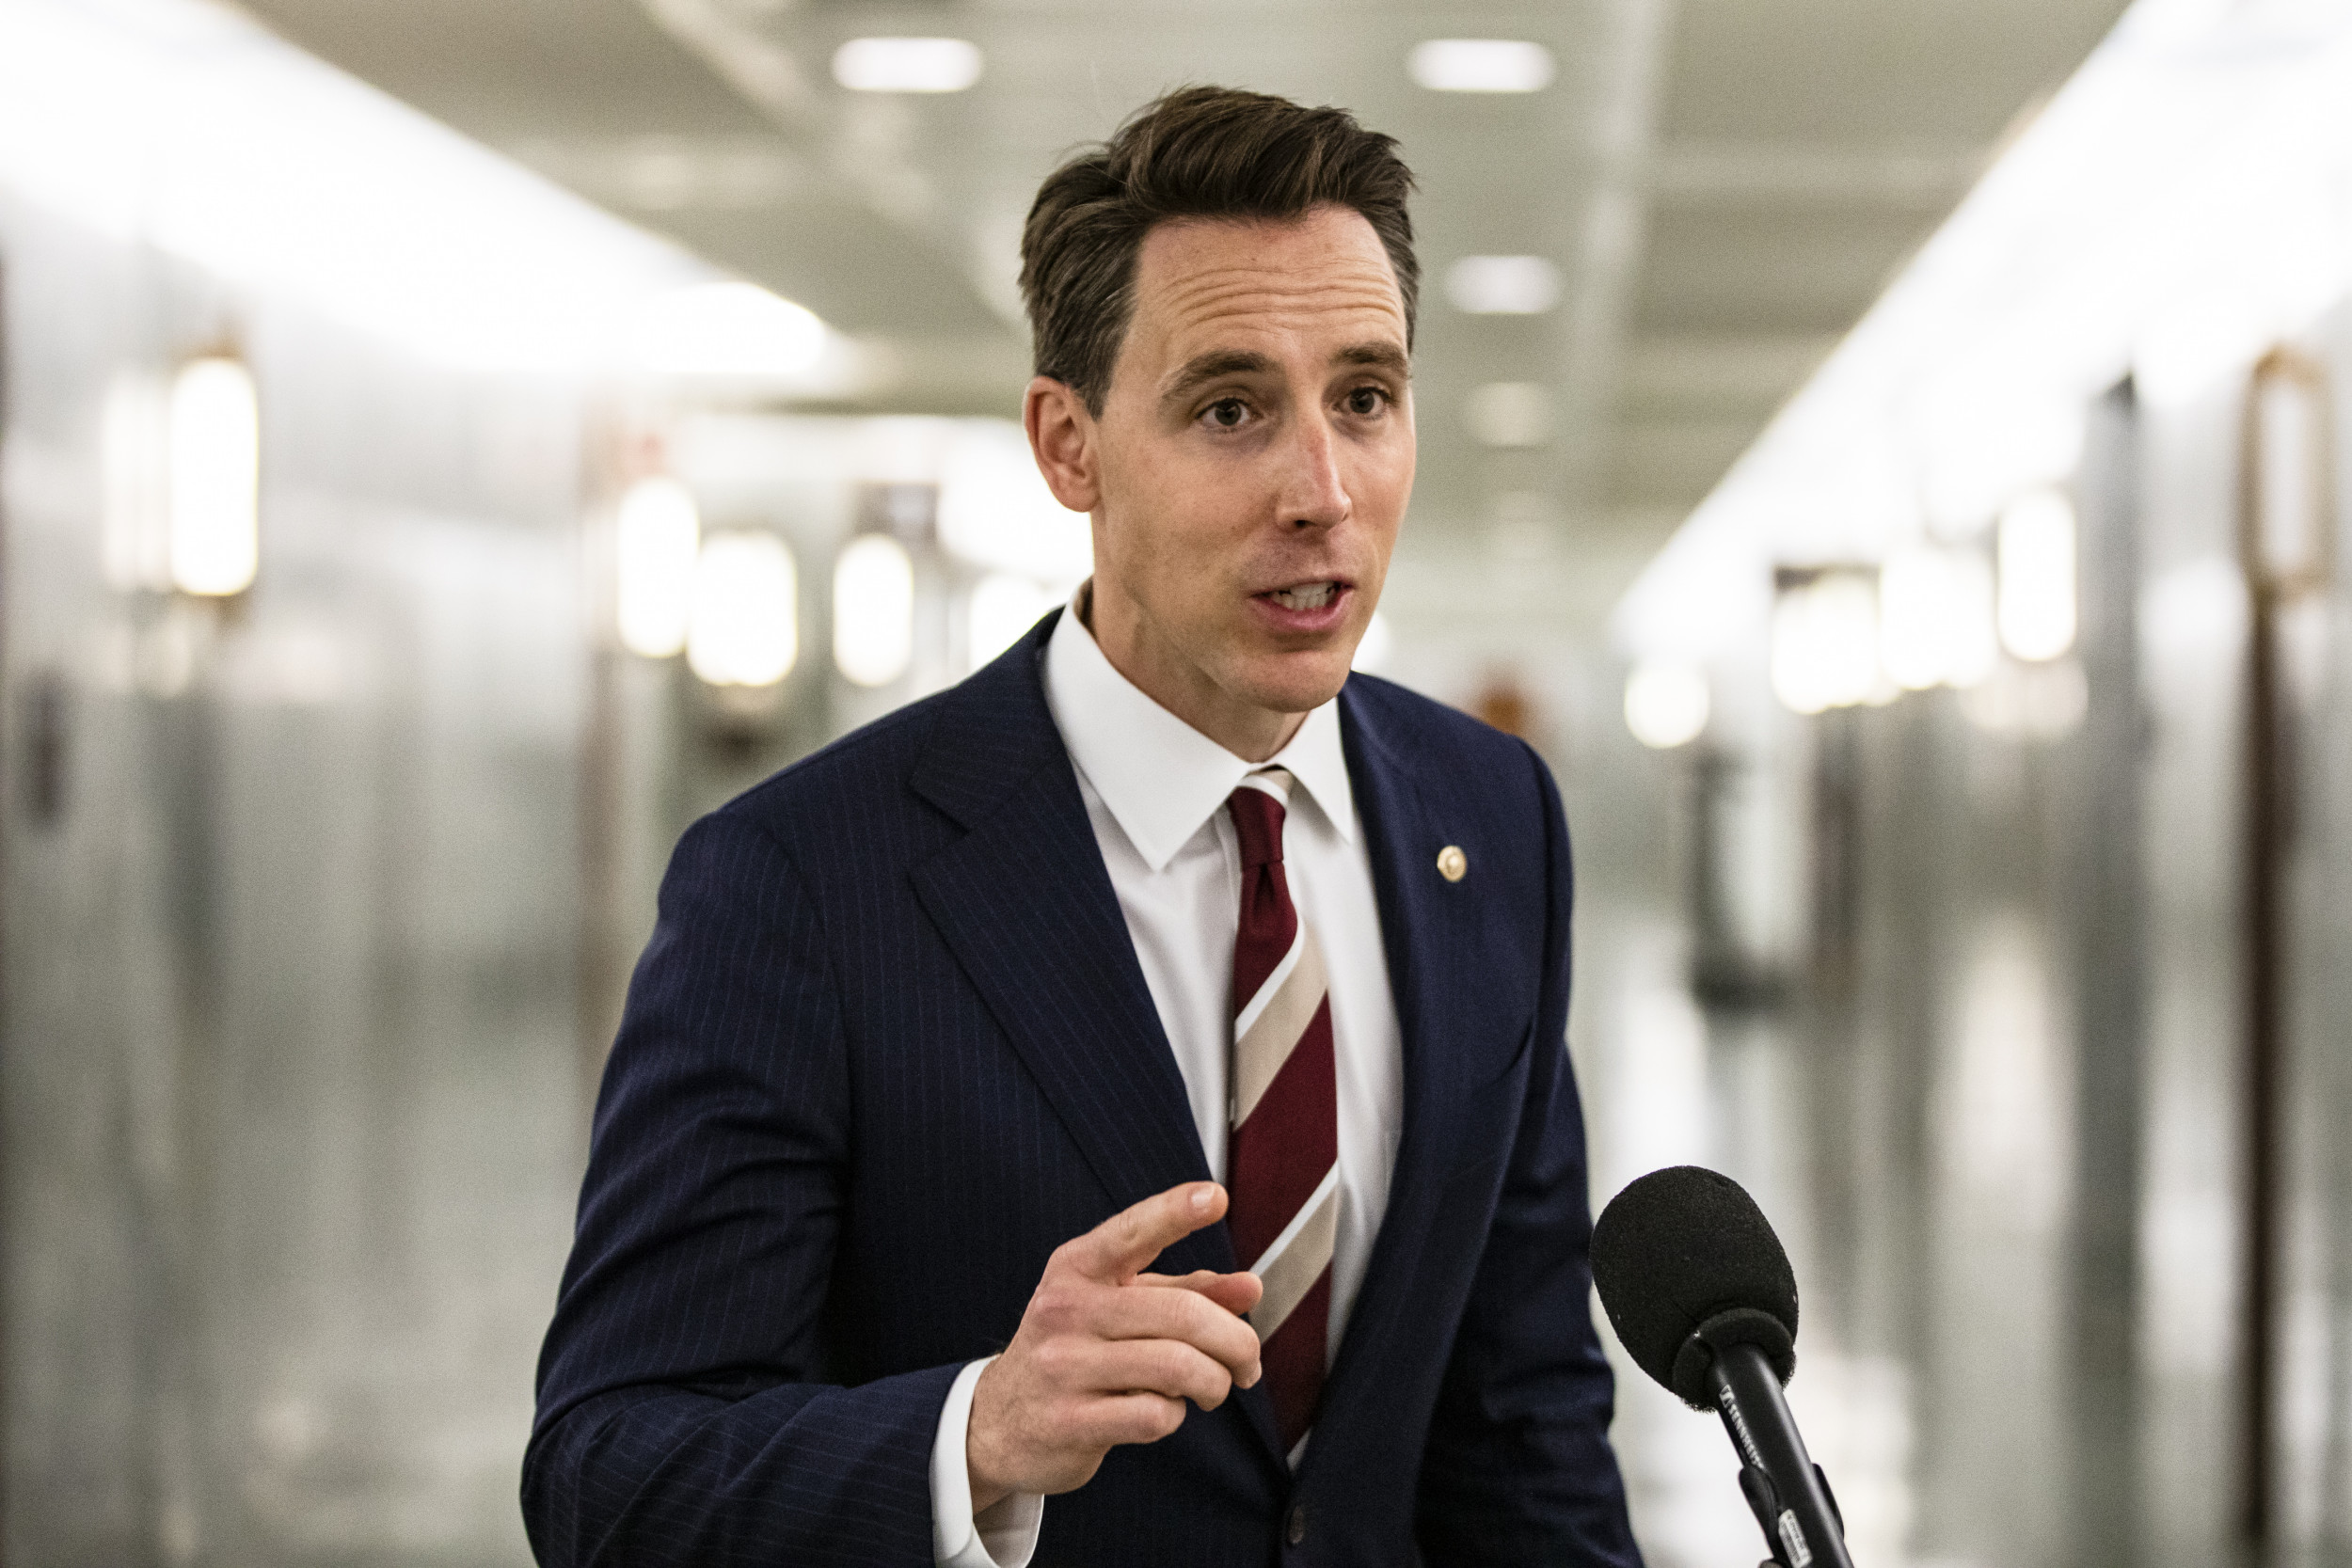 josh-hawley-says-family-threatened-antif